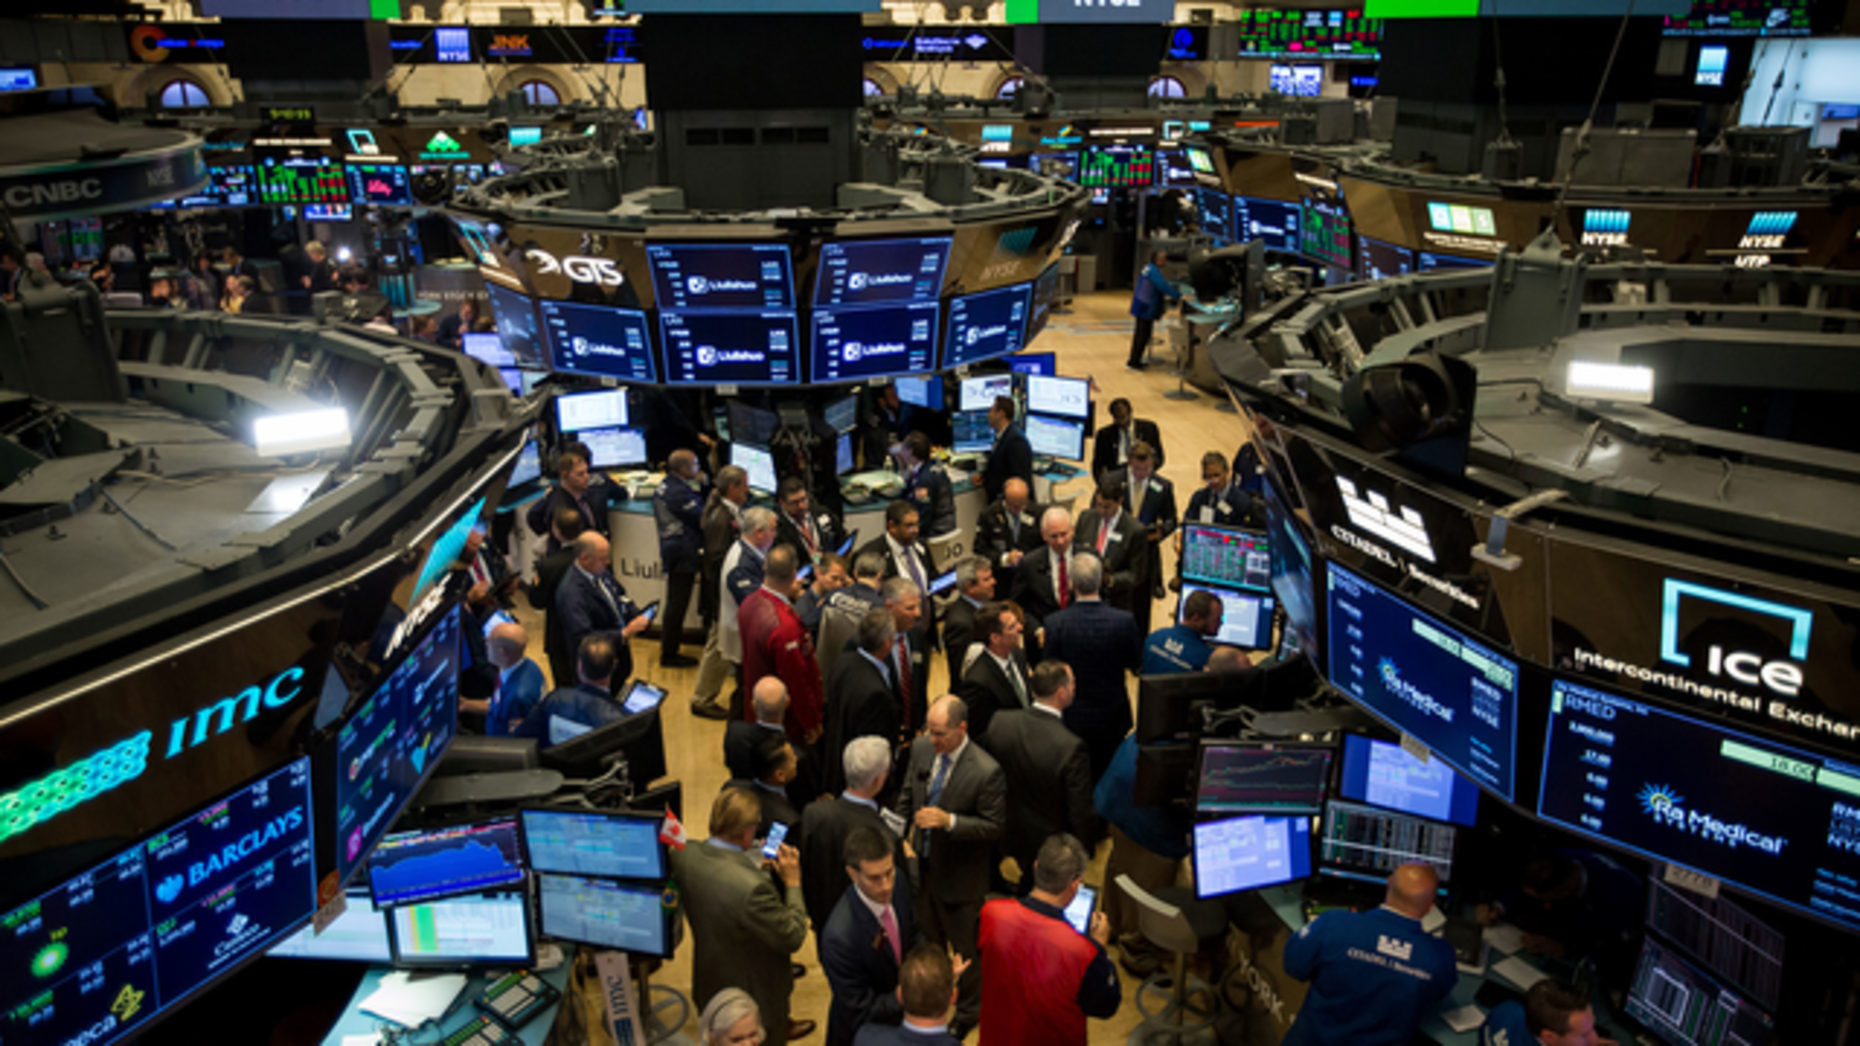 Traders work on the floor of the New York Stock Exchange. Photo by Bloomberg.